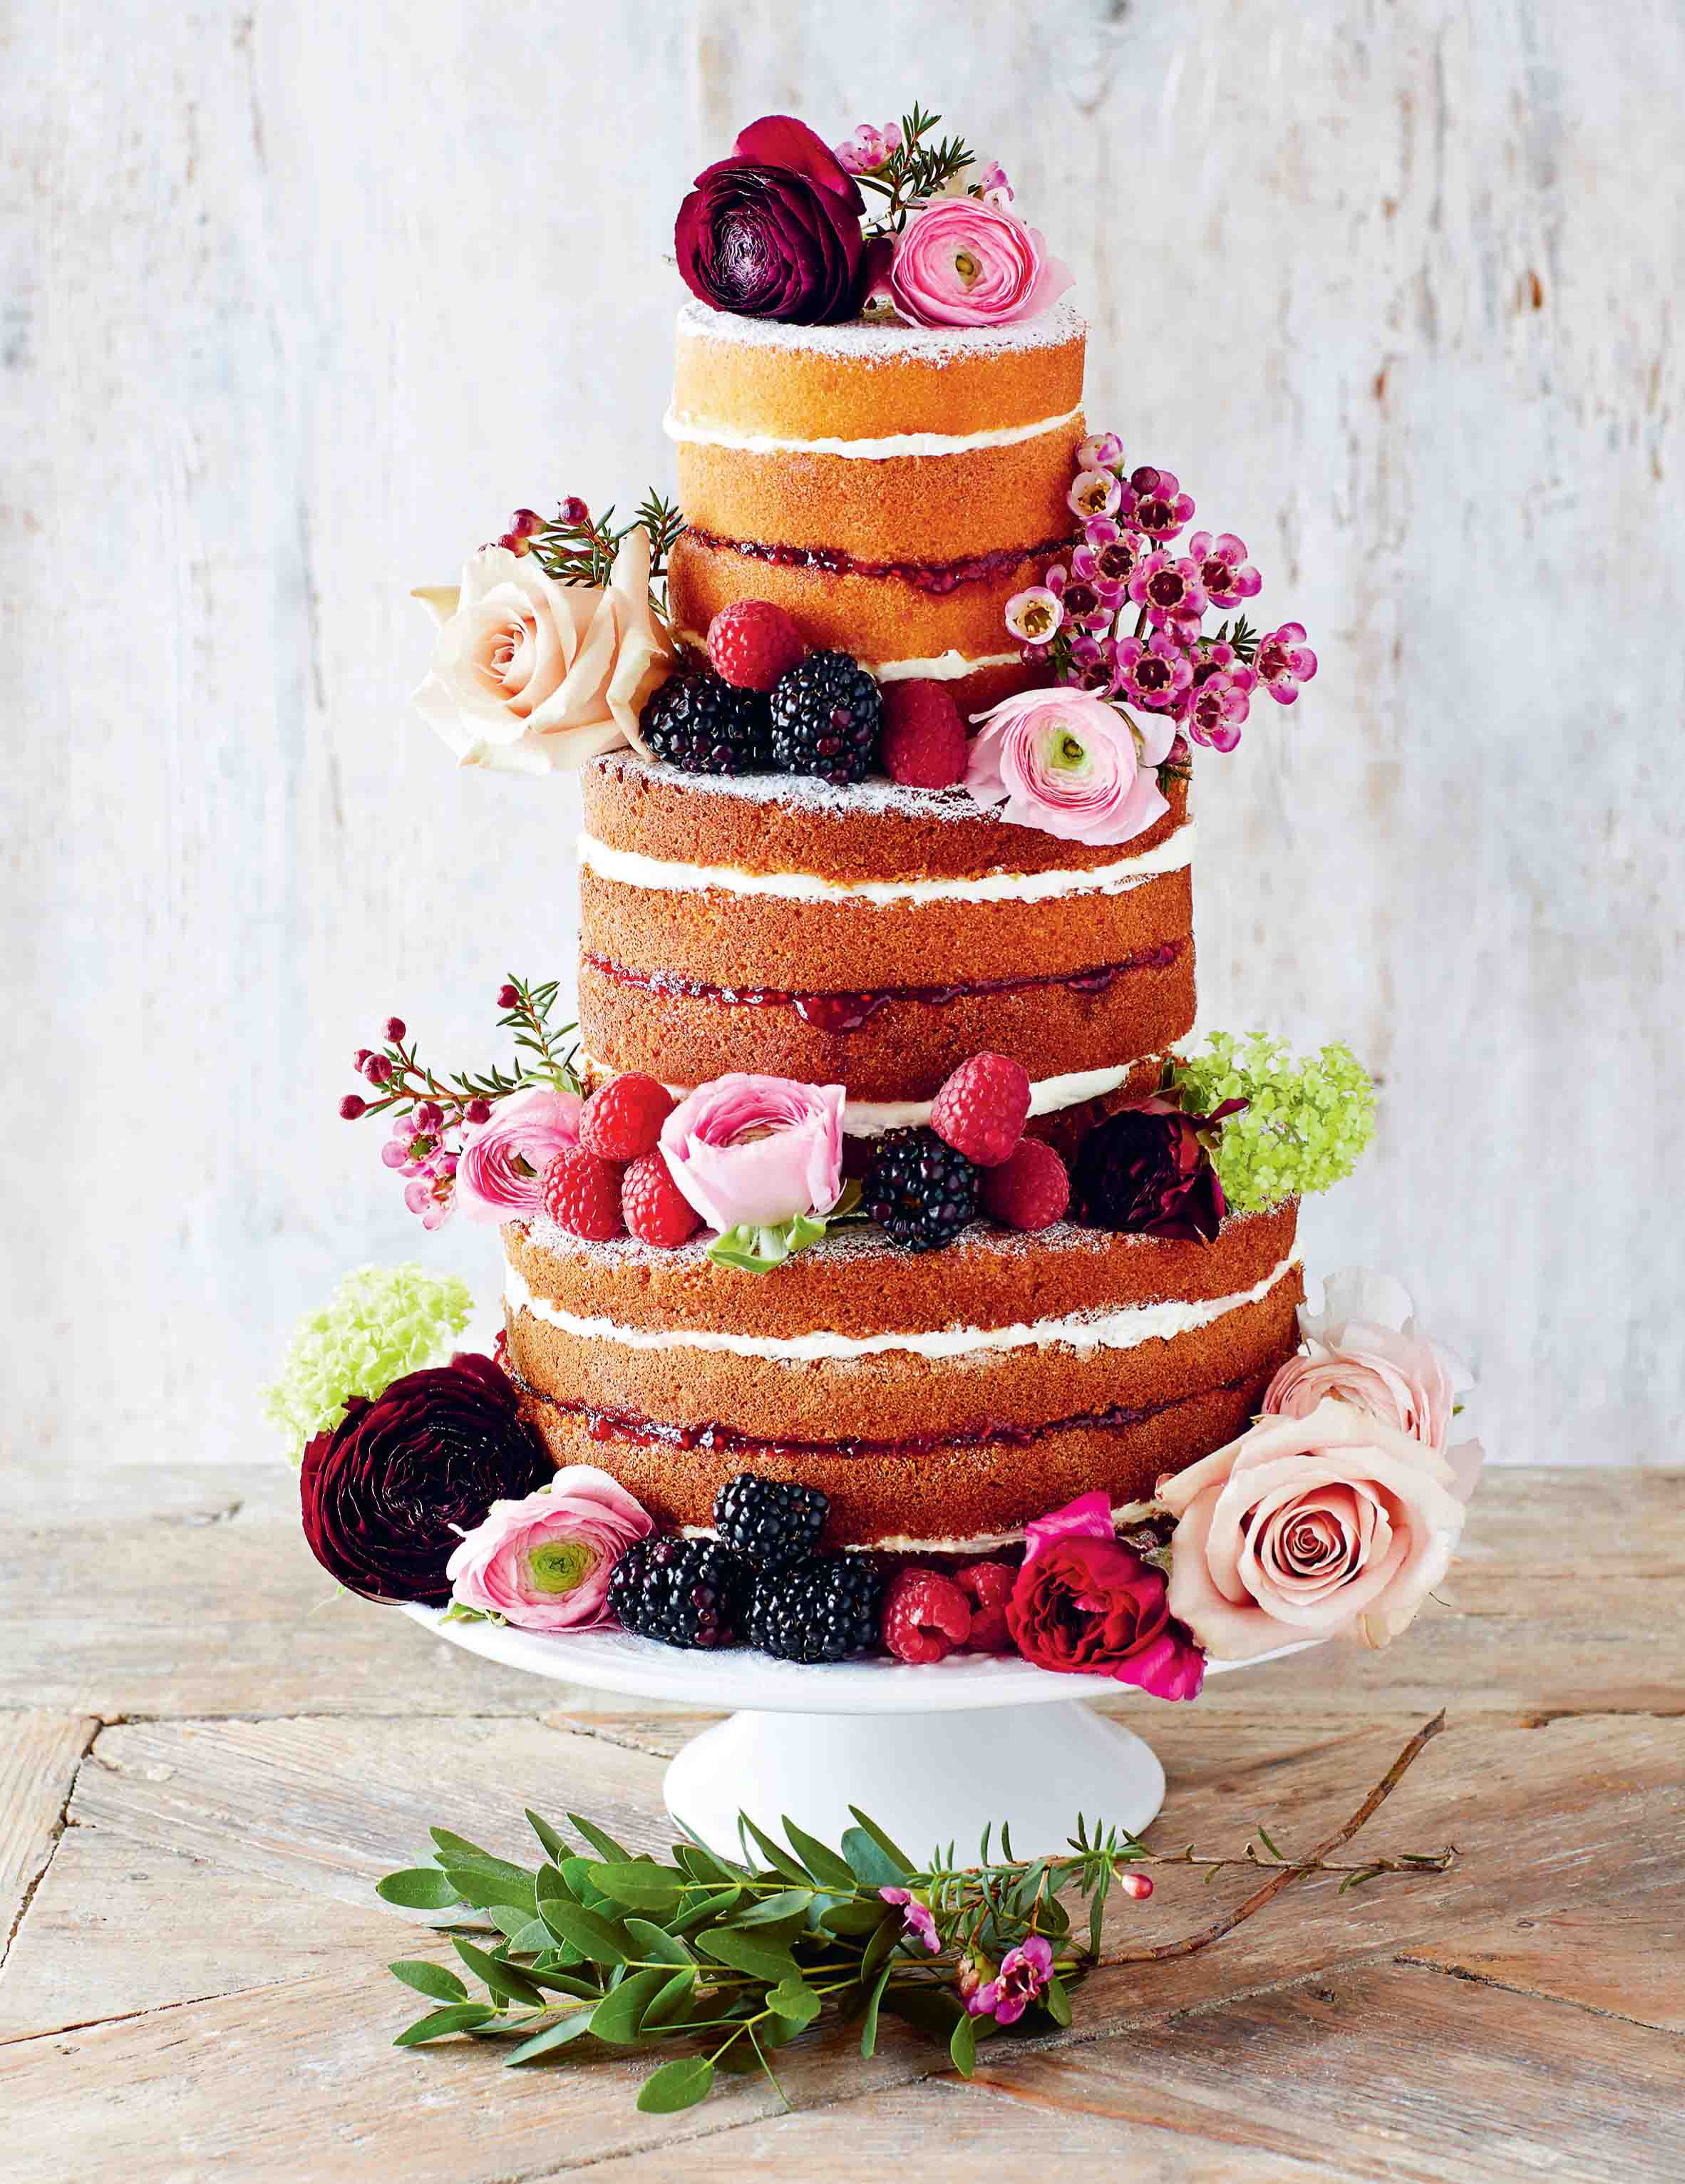 Stacked Victoria sandwich